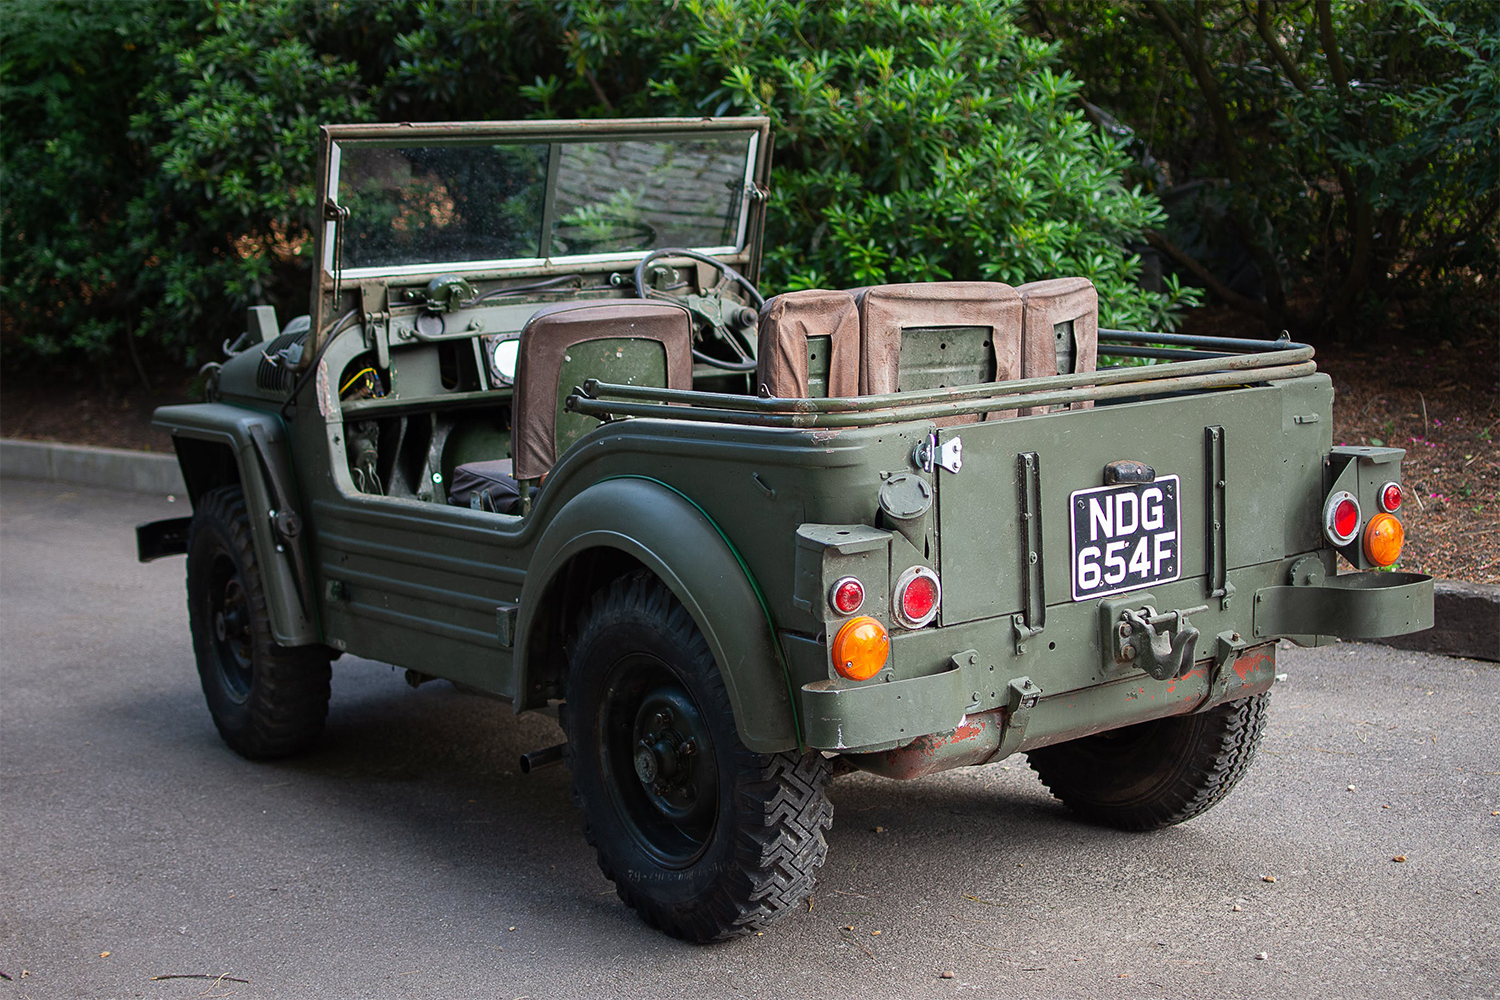 The rear end of a 1952 Austin Champ, a British off-road 4x4 built to outperform the American jeeps of World War II. This model was auctioned off in August 2021.